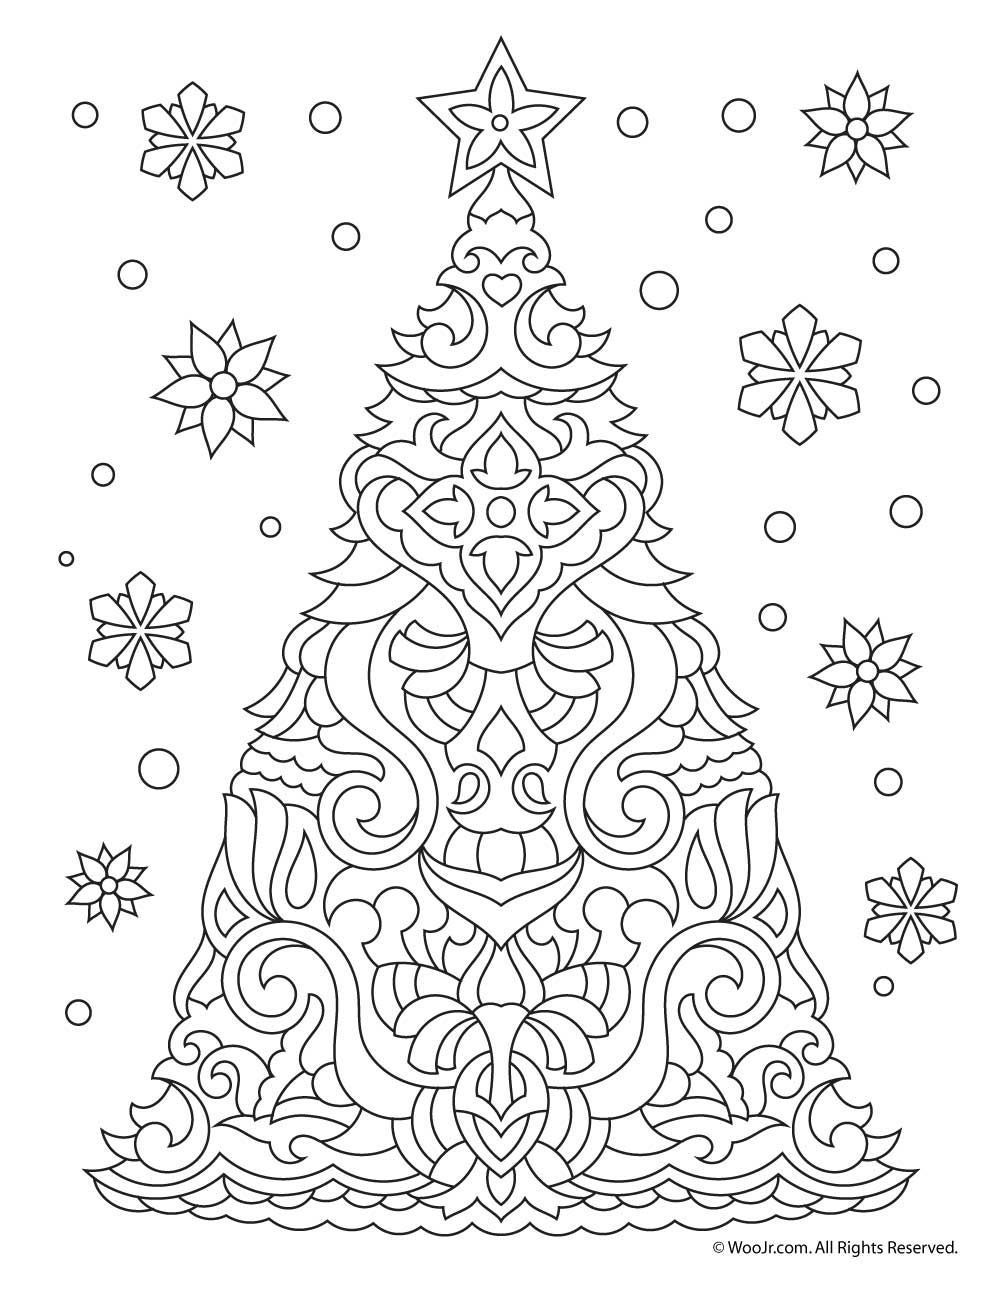 Christmas Tree Adult Coloring Page | Woo! Jr. Kids Activities #coloringsheets